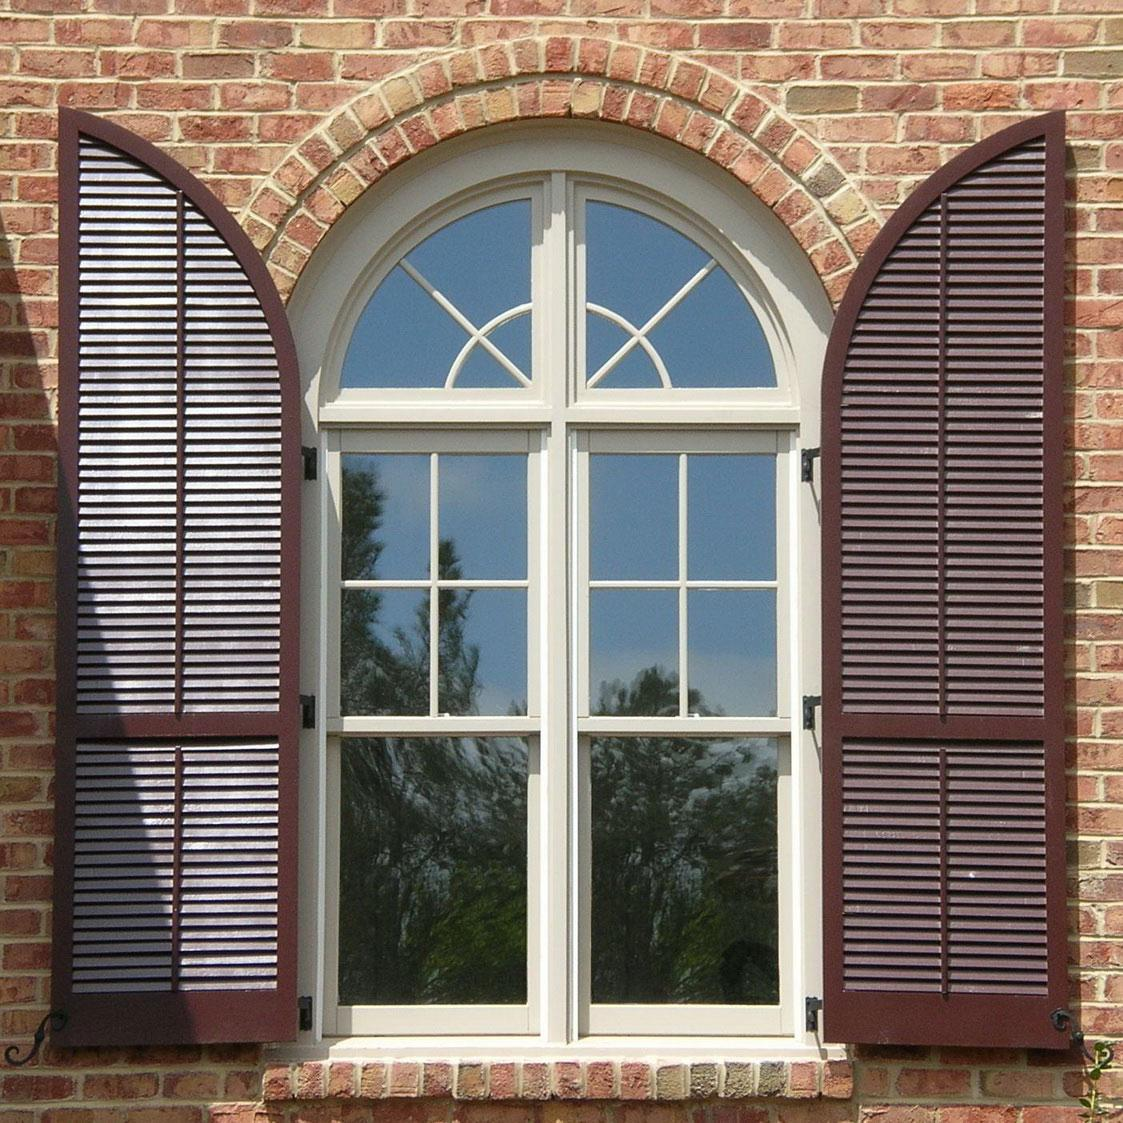 Home Shutter Designs on home shutter painting, home shutter ideas, home styles shutter, homemade shutters designs, home shutter shades, home shutter hardware, home shutter colors,